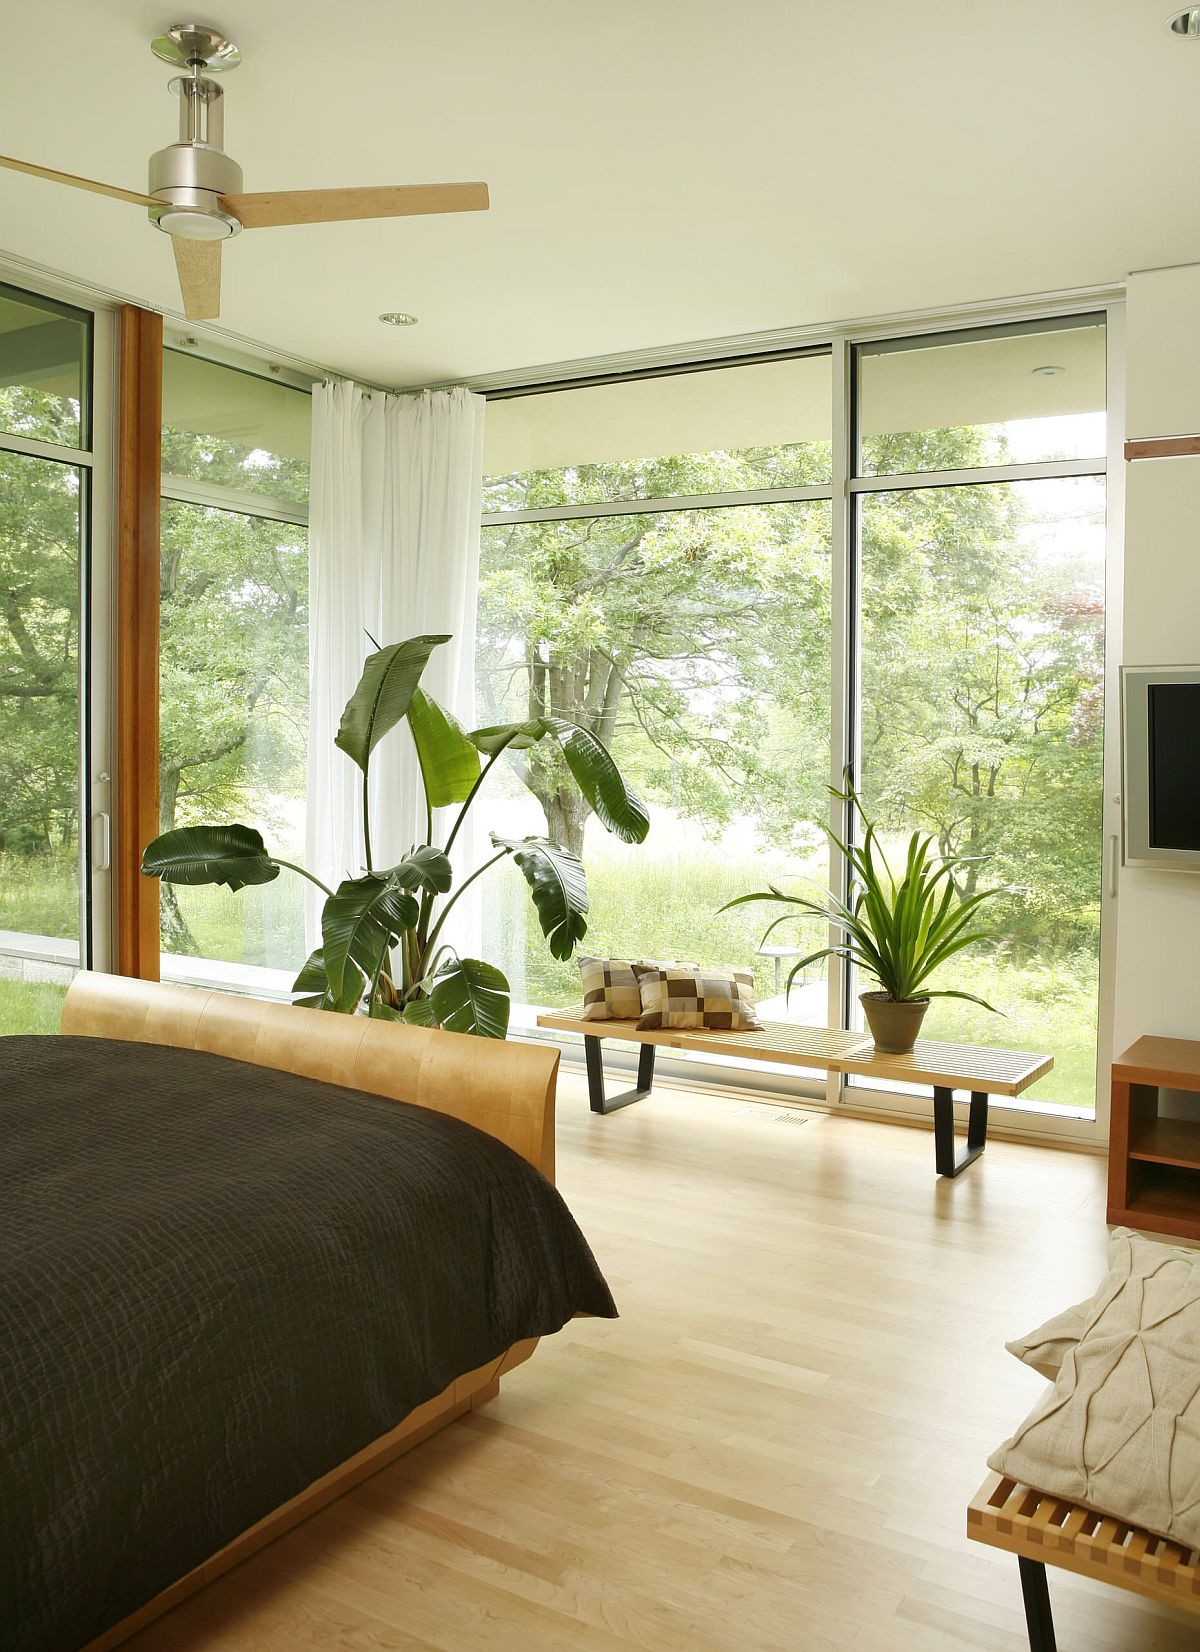 Allow the world outside to bring color into the bedroom along with freshness